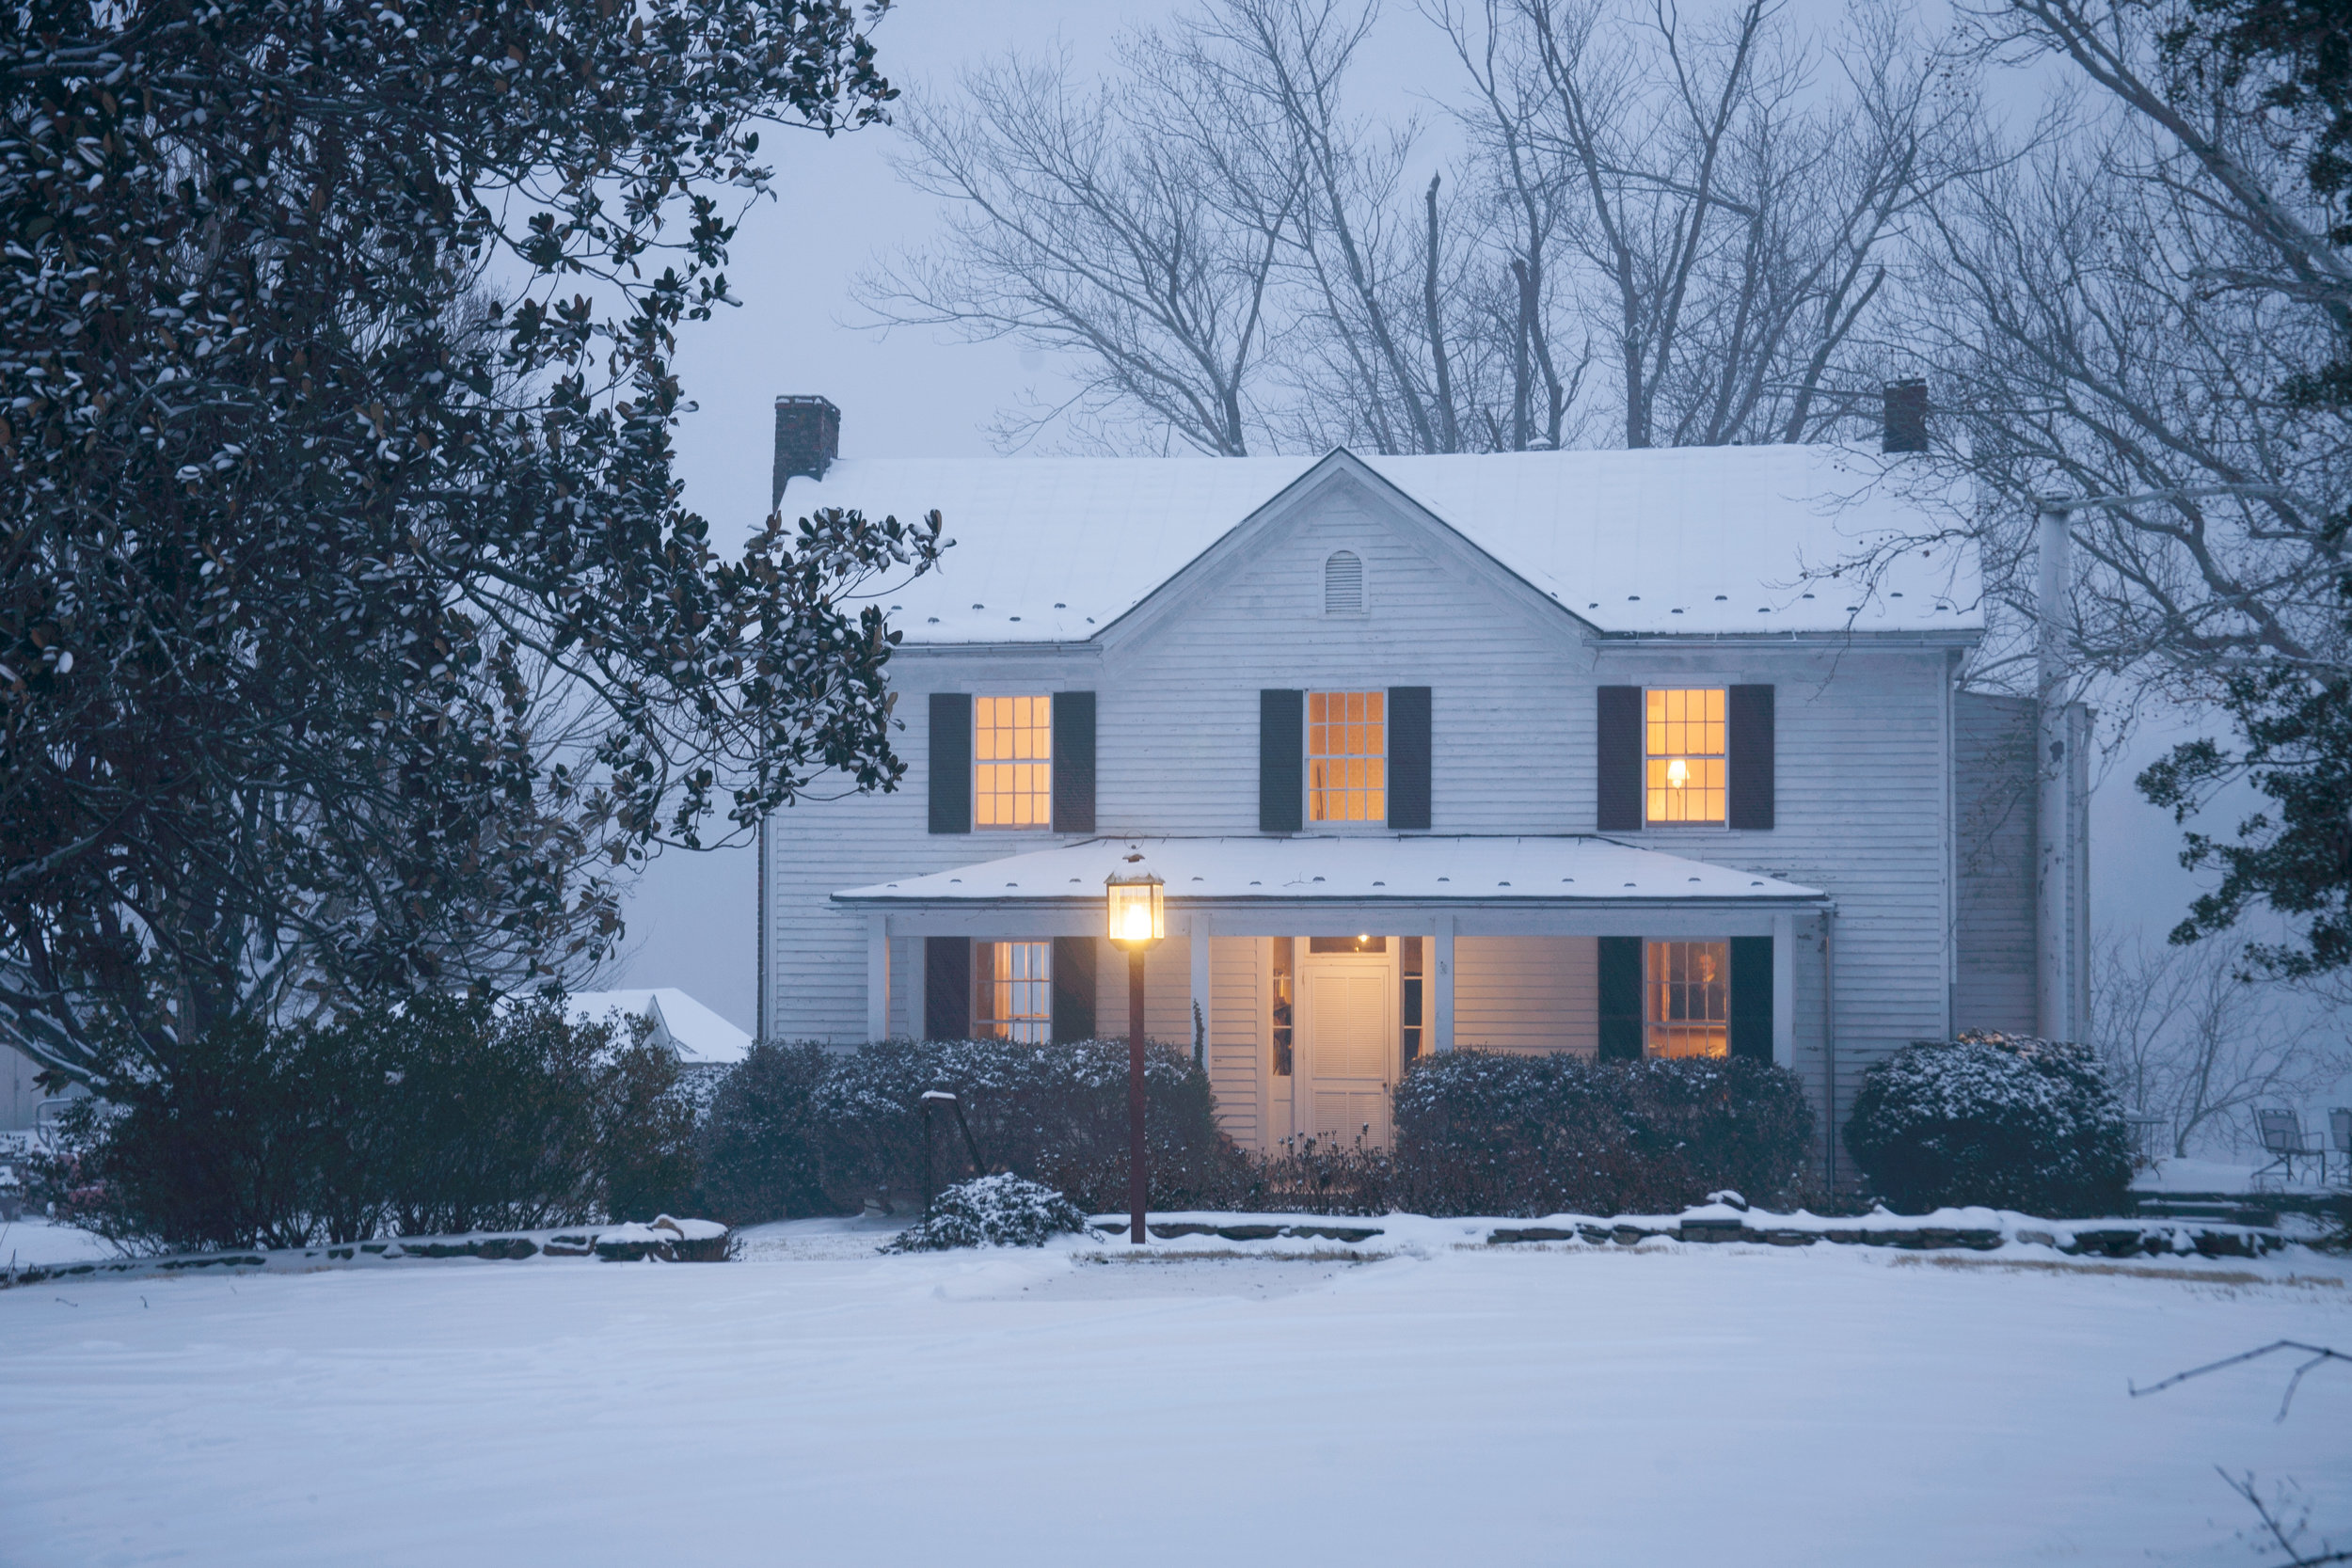 The snow-covered farmhouse